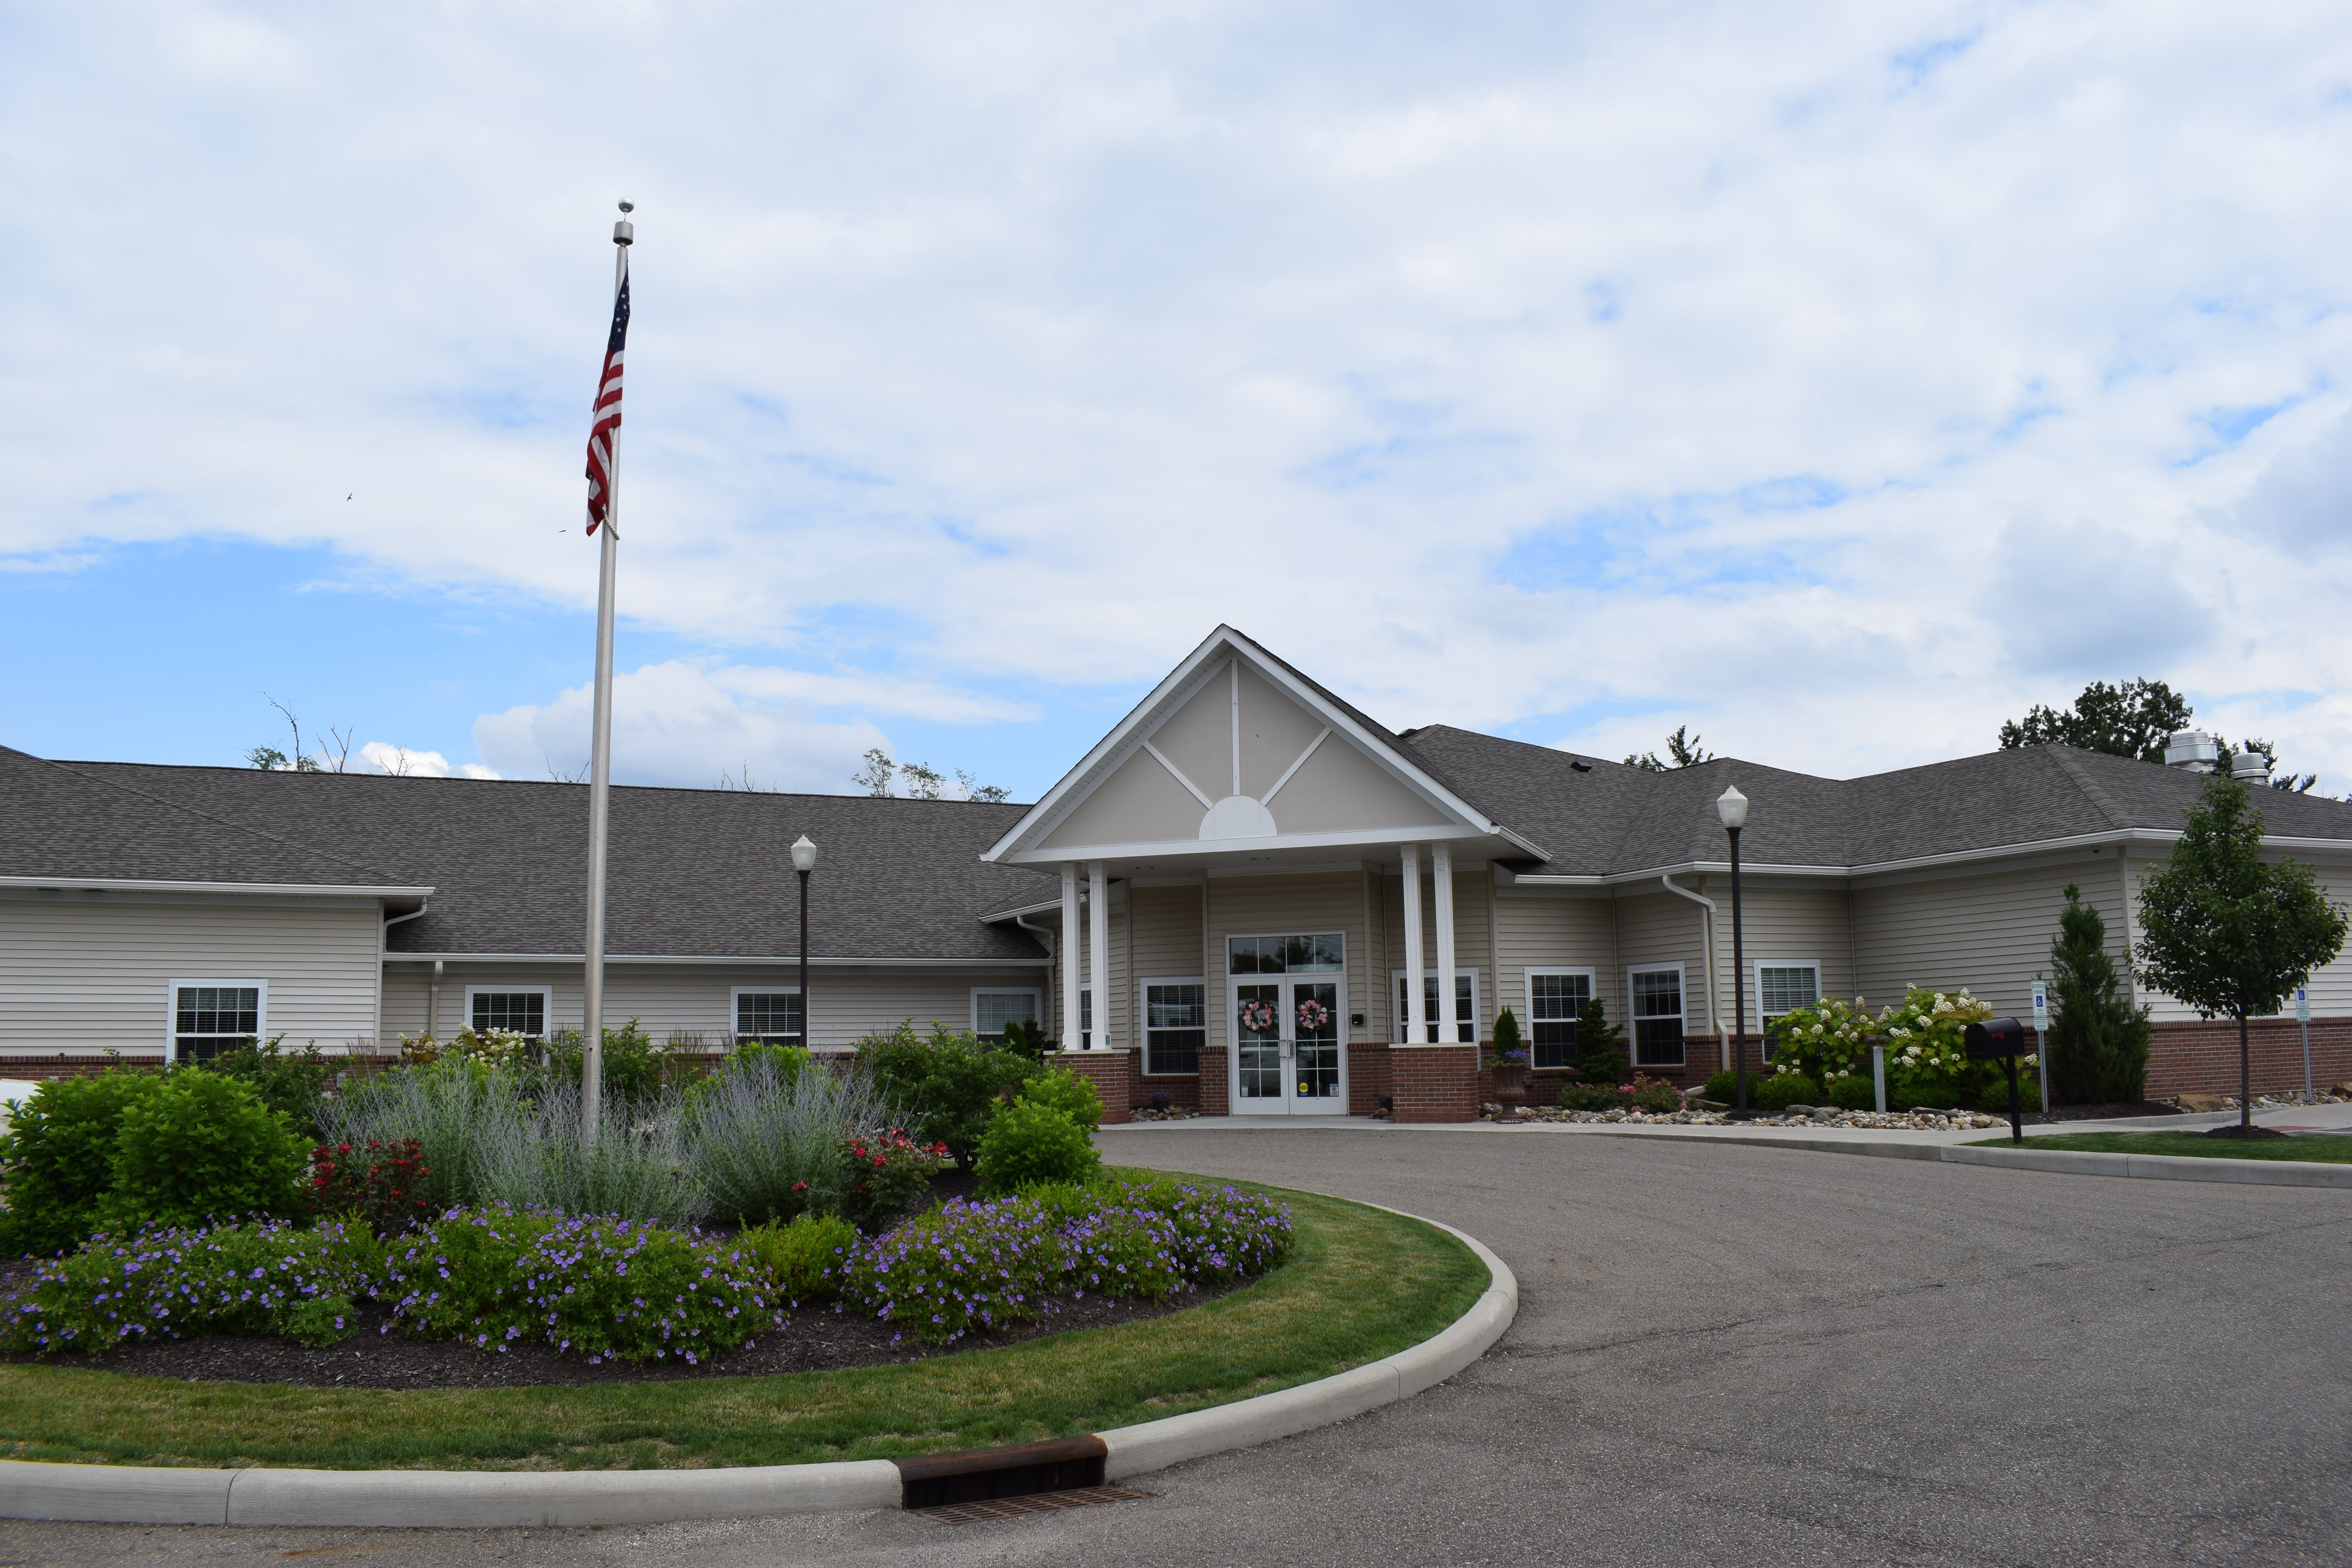 Photo 1 of Stone Creek Assisted Living and Memory Care